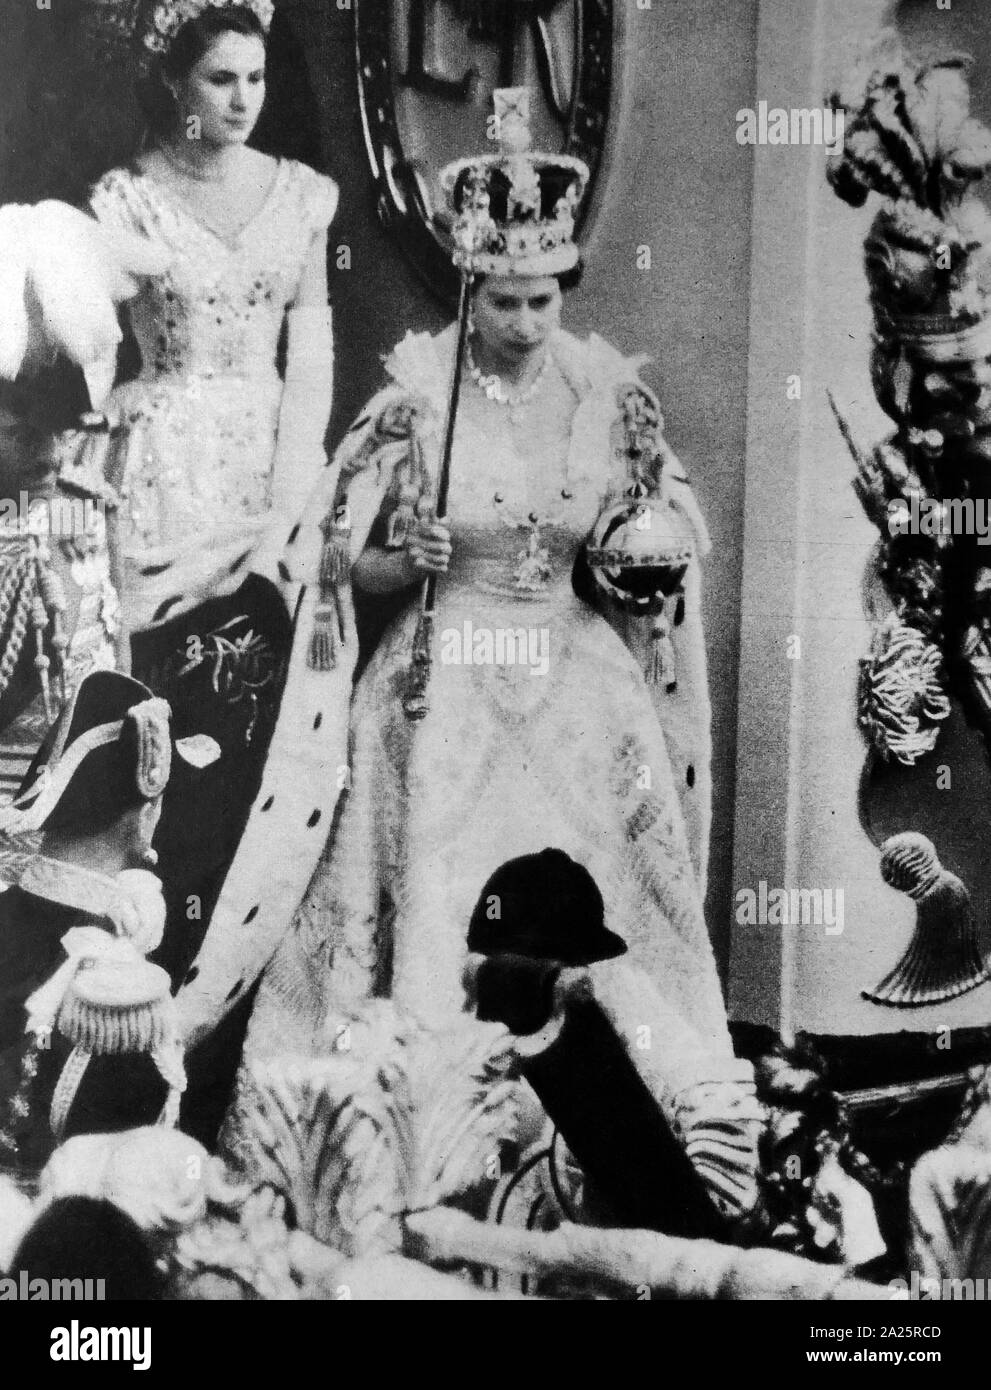 coronation of queen elizabeth ii 1953 stock photo alamy https www alamy com coronation of queen elizabeth ii 1953 image328354445 html